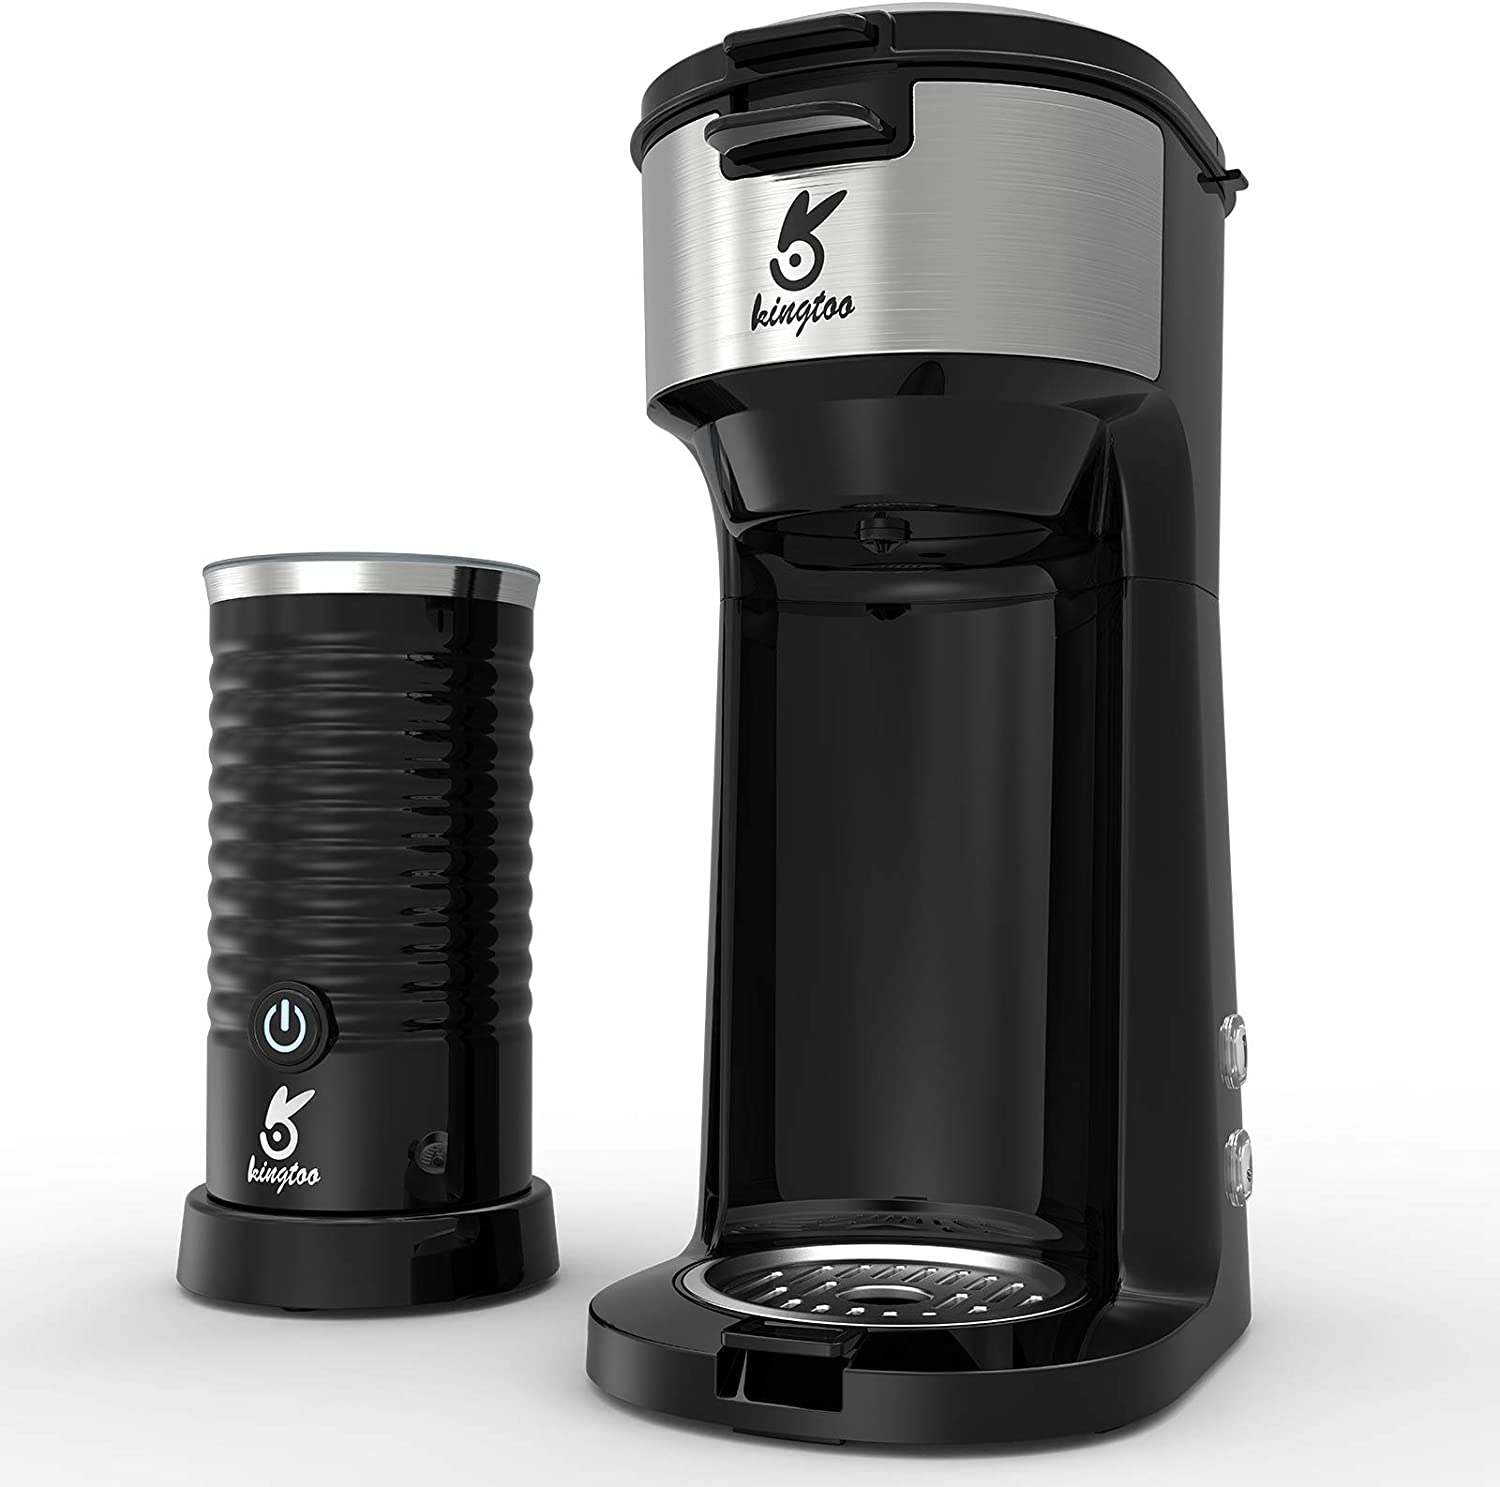 Coffee Machine with Milk Frother, Single Serve Coffee Maker for K-Cup Pod & Ground Coffee,2 IN 1 Strength-Controlled and Self Cleaning Function,Kingtoo Coffee brewer with Compact Design 6 to 14 oz Brew Sizes (Black)